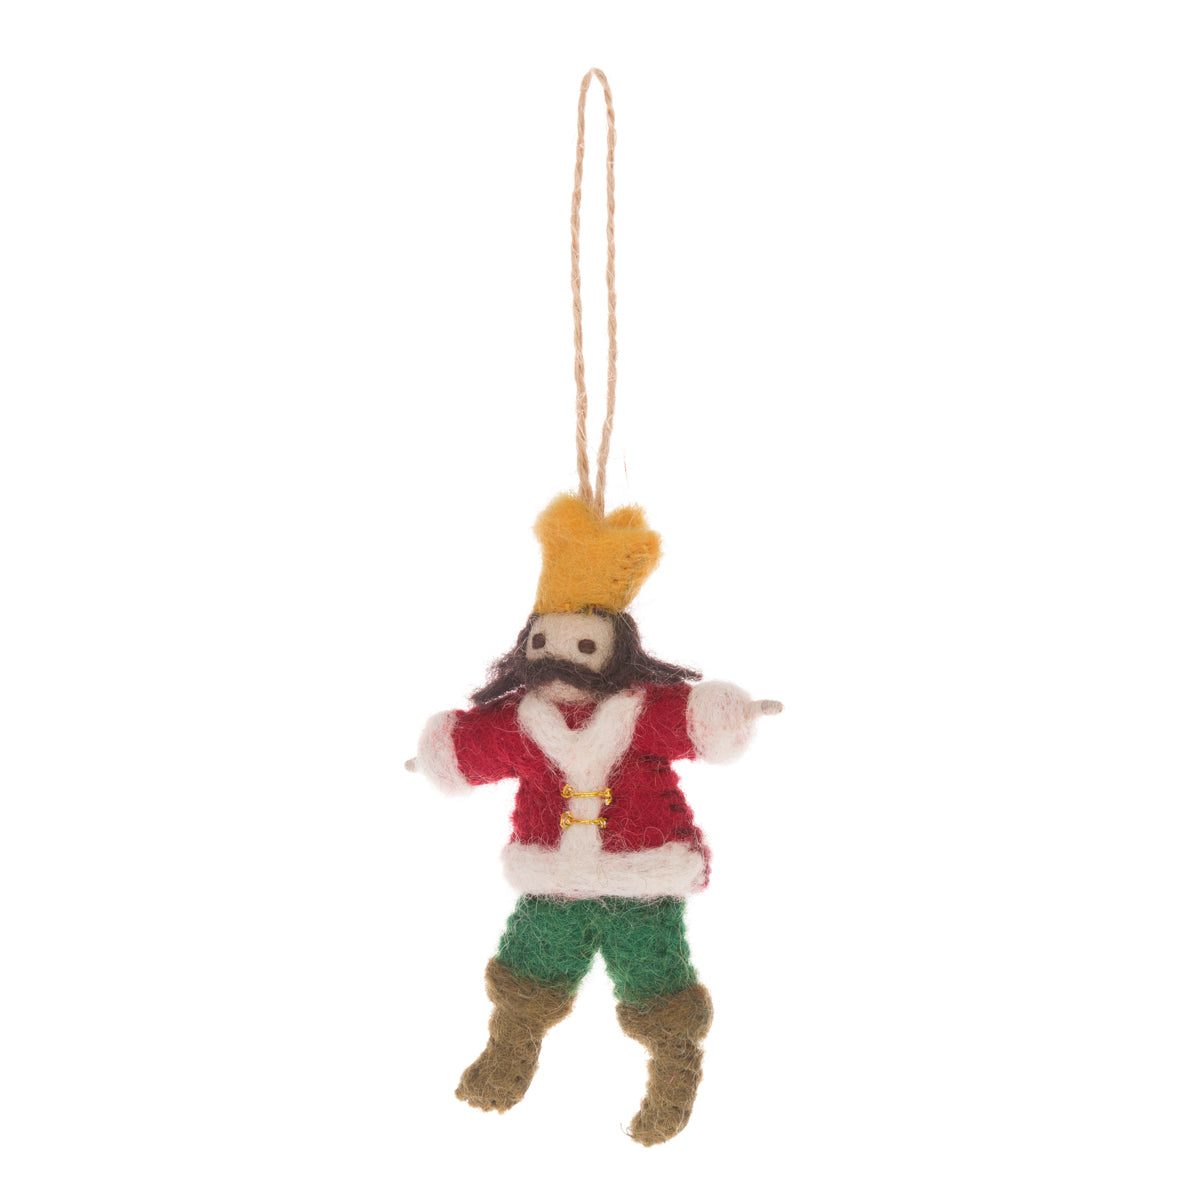 Lord Leaping Felt Decoration